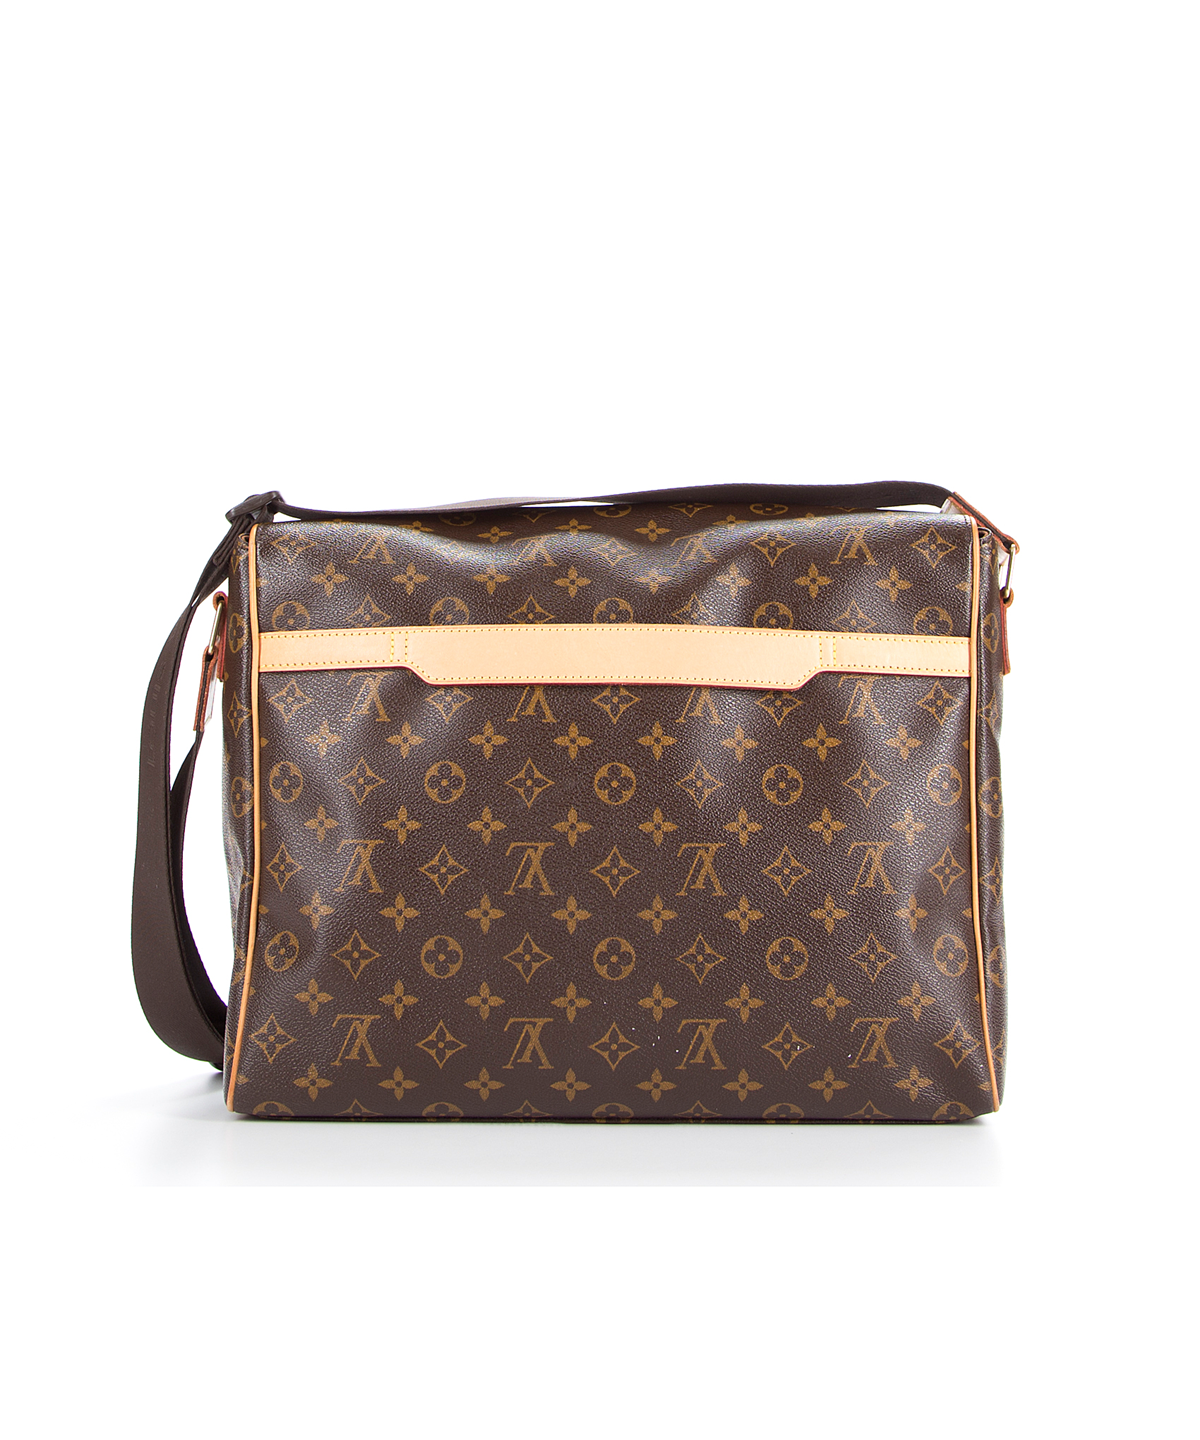 Louis Vuitton Pre Owned Monogram Canvas Abbesses Messenger Bag In Brown Modesens Louis Vuitton Monogram Canvas Pre Owned Louis Vuitton